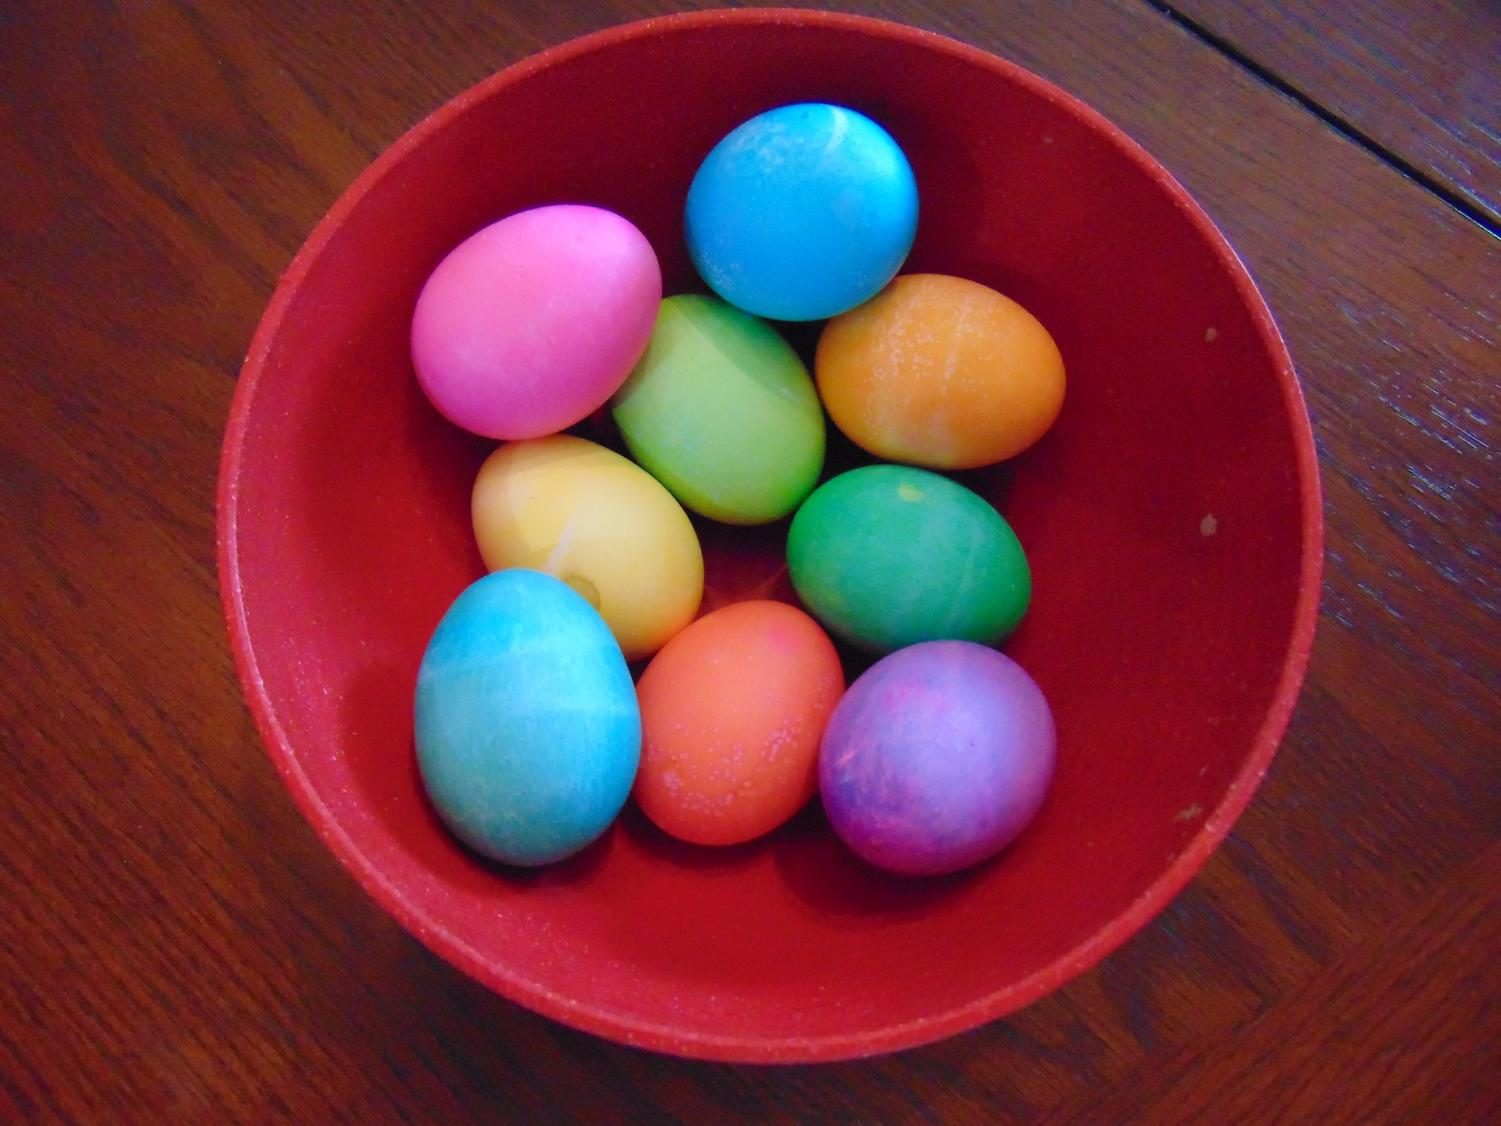 Easter falls on Sunday, April 21 this year. Make sure to decorate the house with egg-tastic decorations to celebrate the day with family and friends.